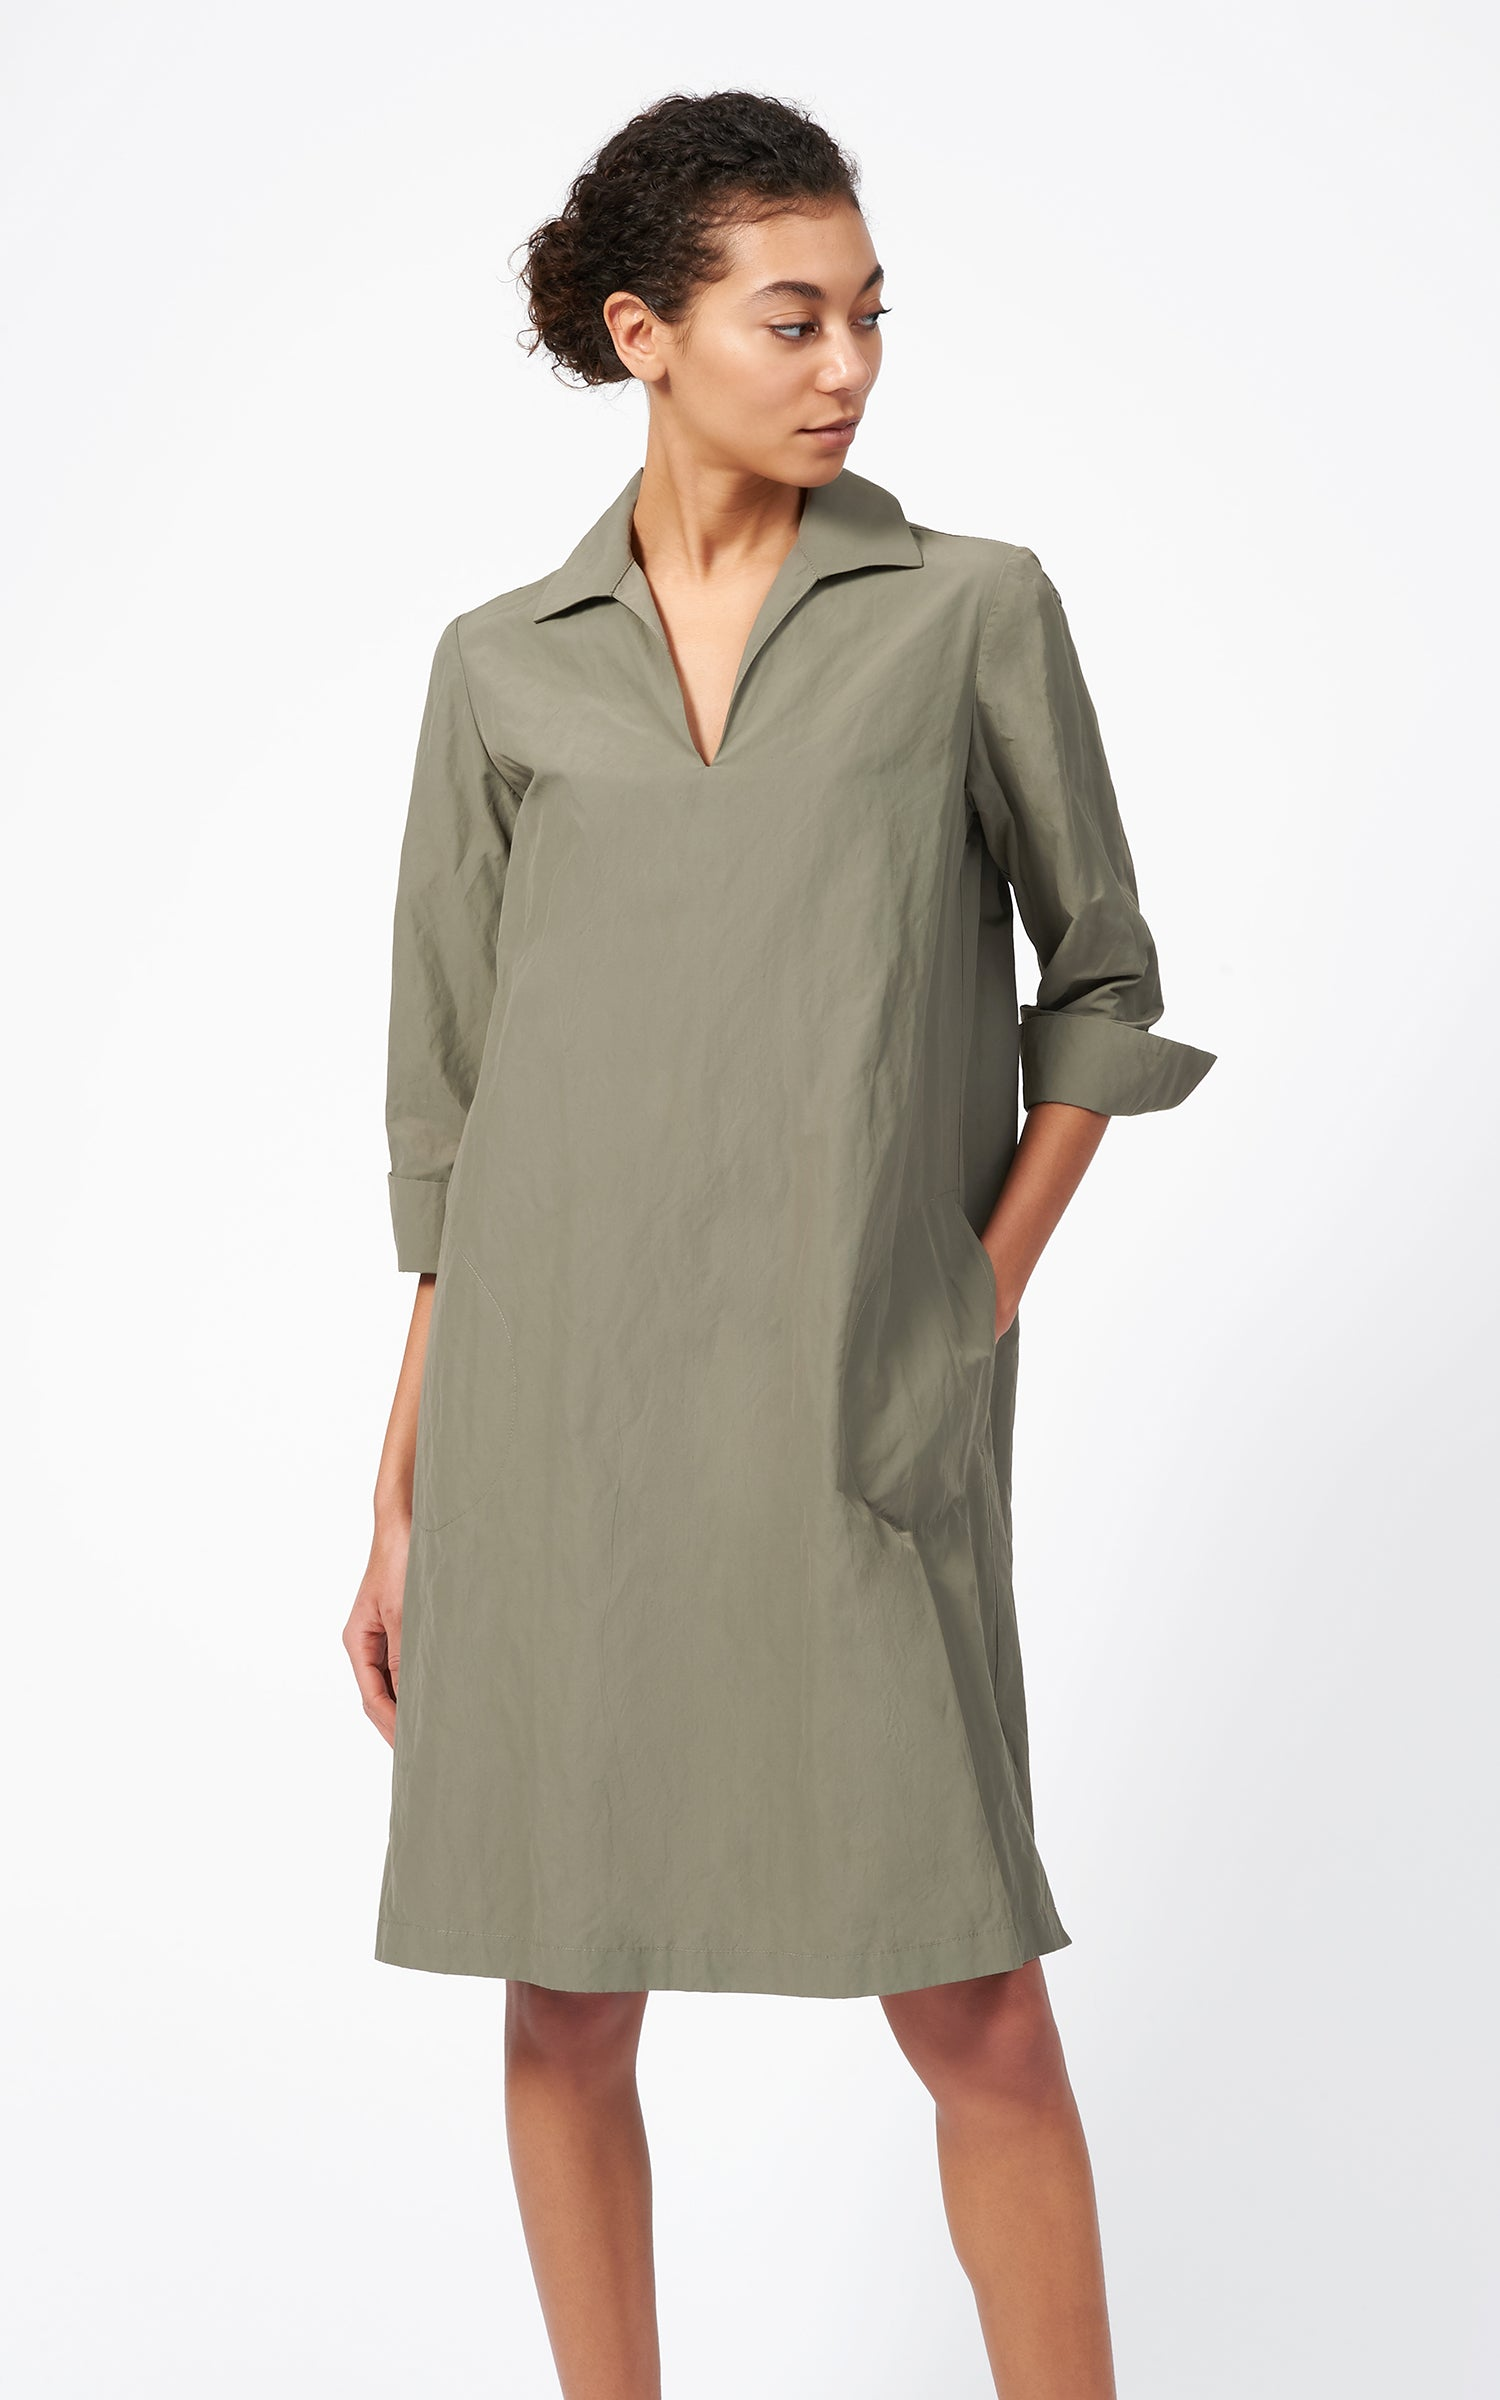 COLLARED V-NECK DRESS - OLIVE